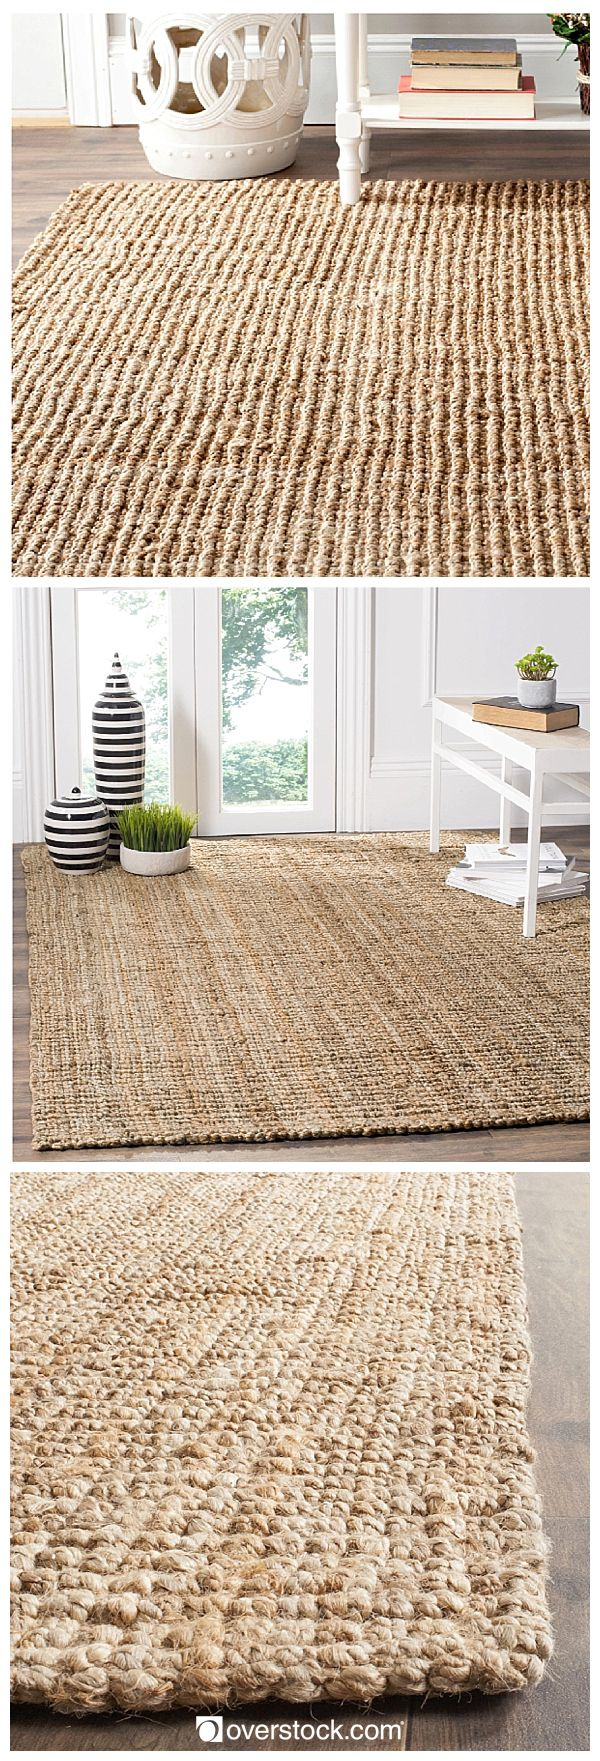 kitchen rugs under table